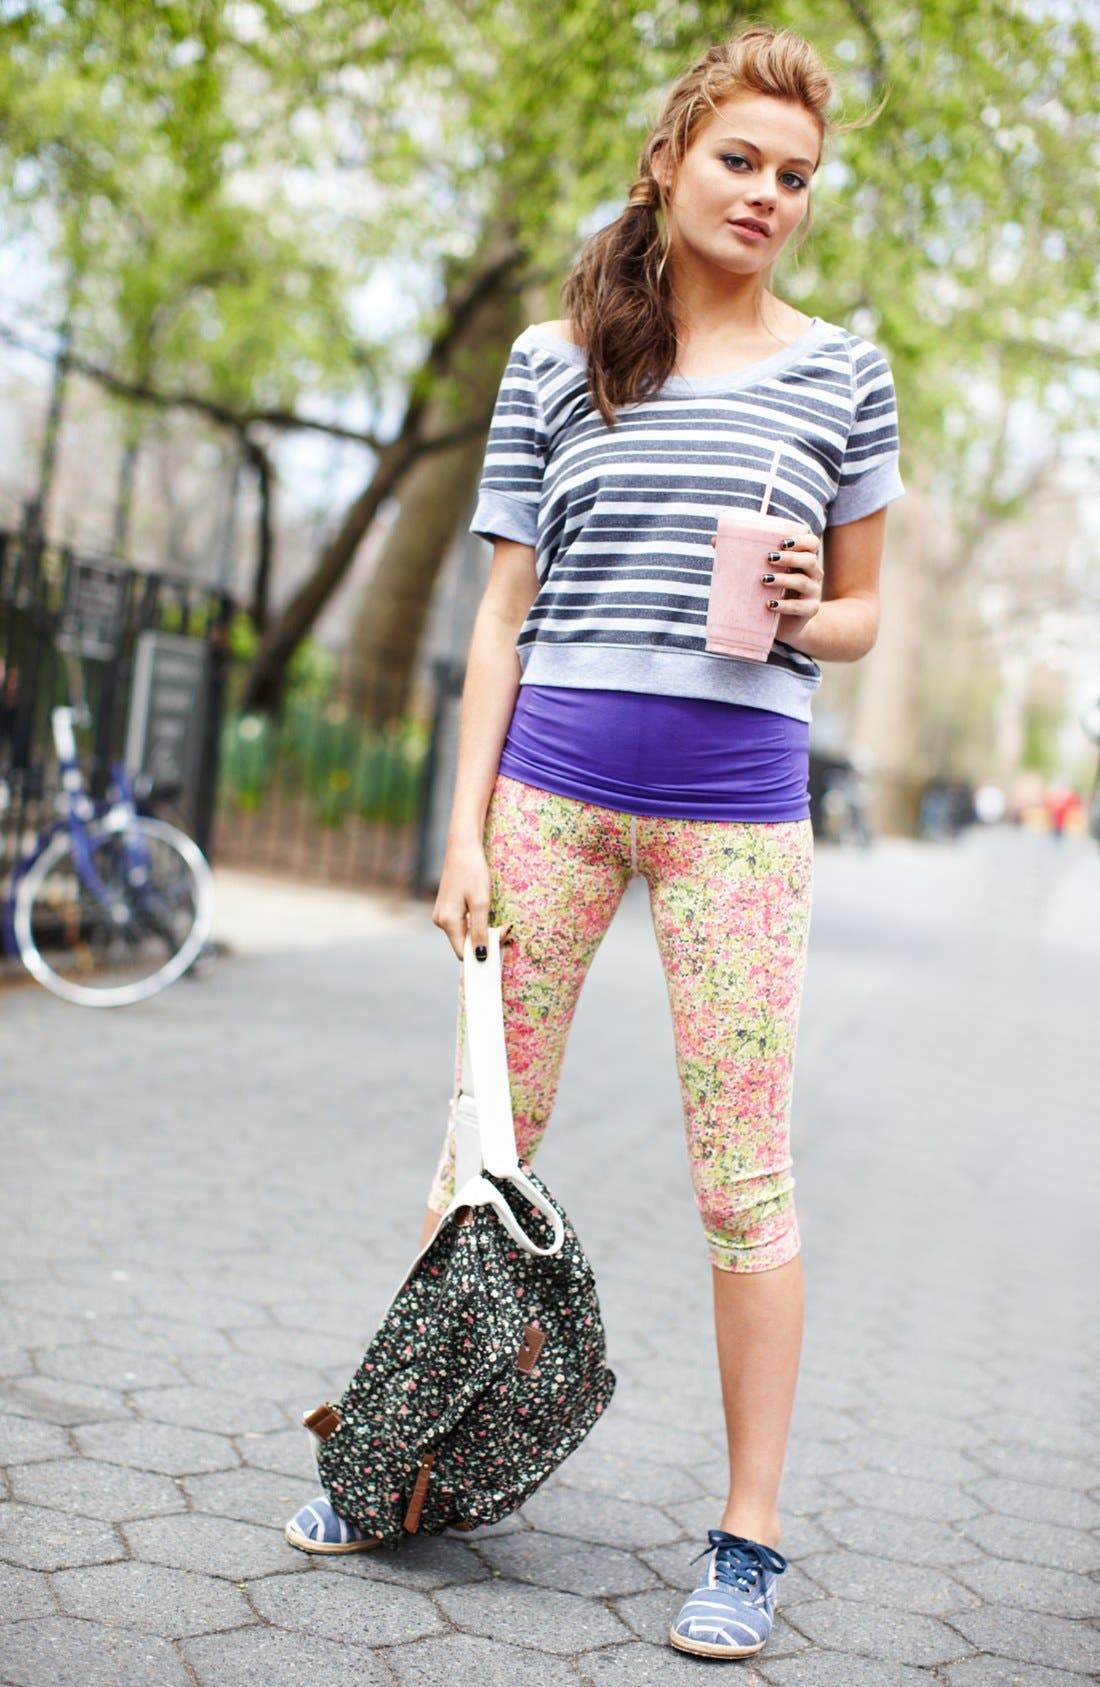 Main Image - Unit-Y Tee, Tank & Capri Pants